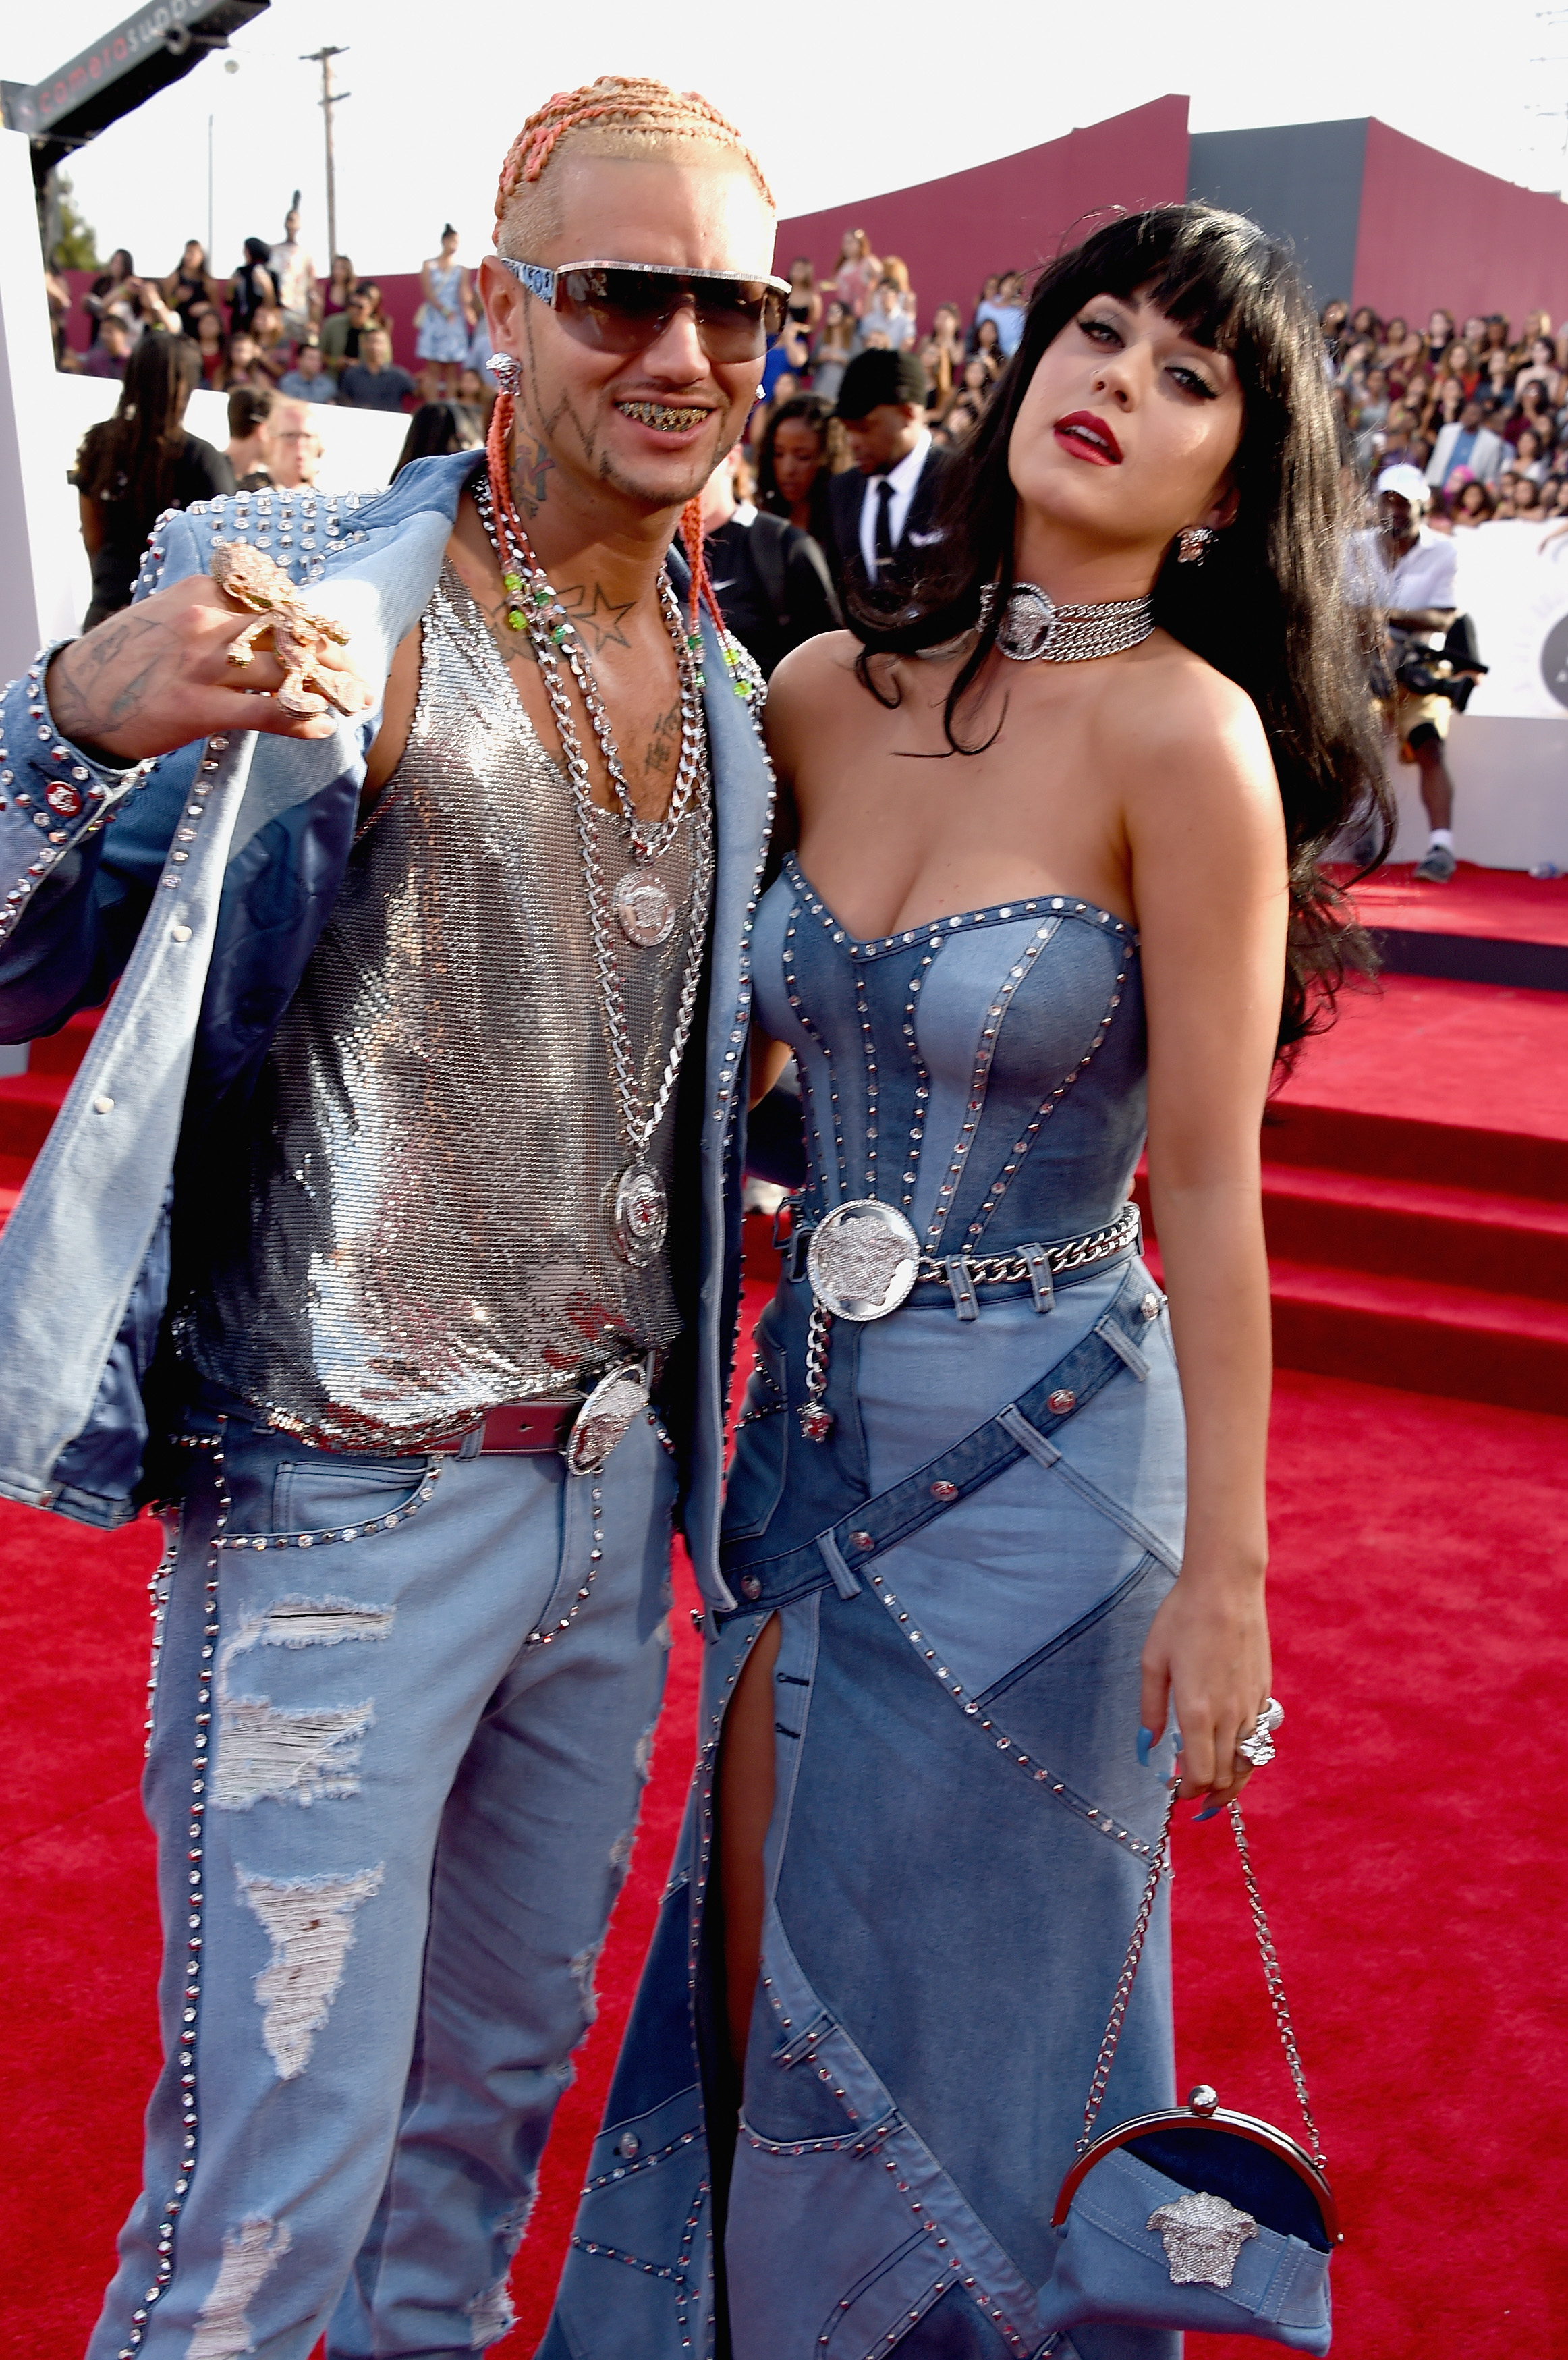 Riff Raff and Katy Perry attend the 2014 MTV Video Music Awards at The Forum on August 24, 2014 in Inglewood, California.